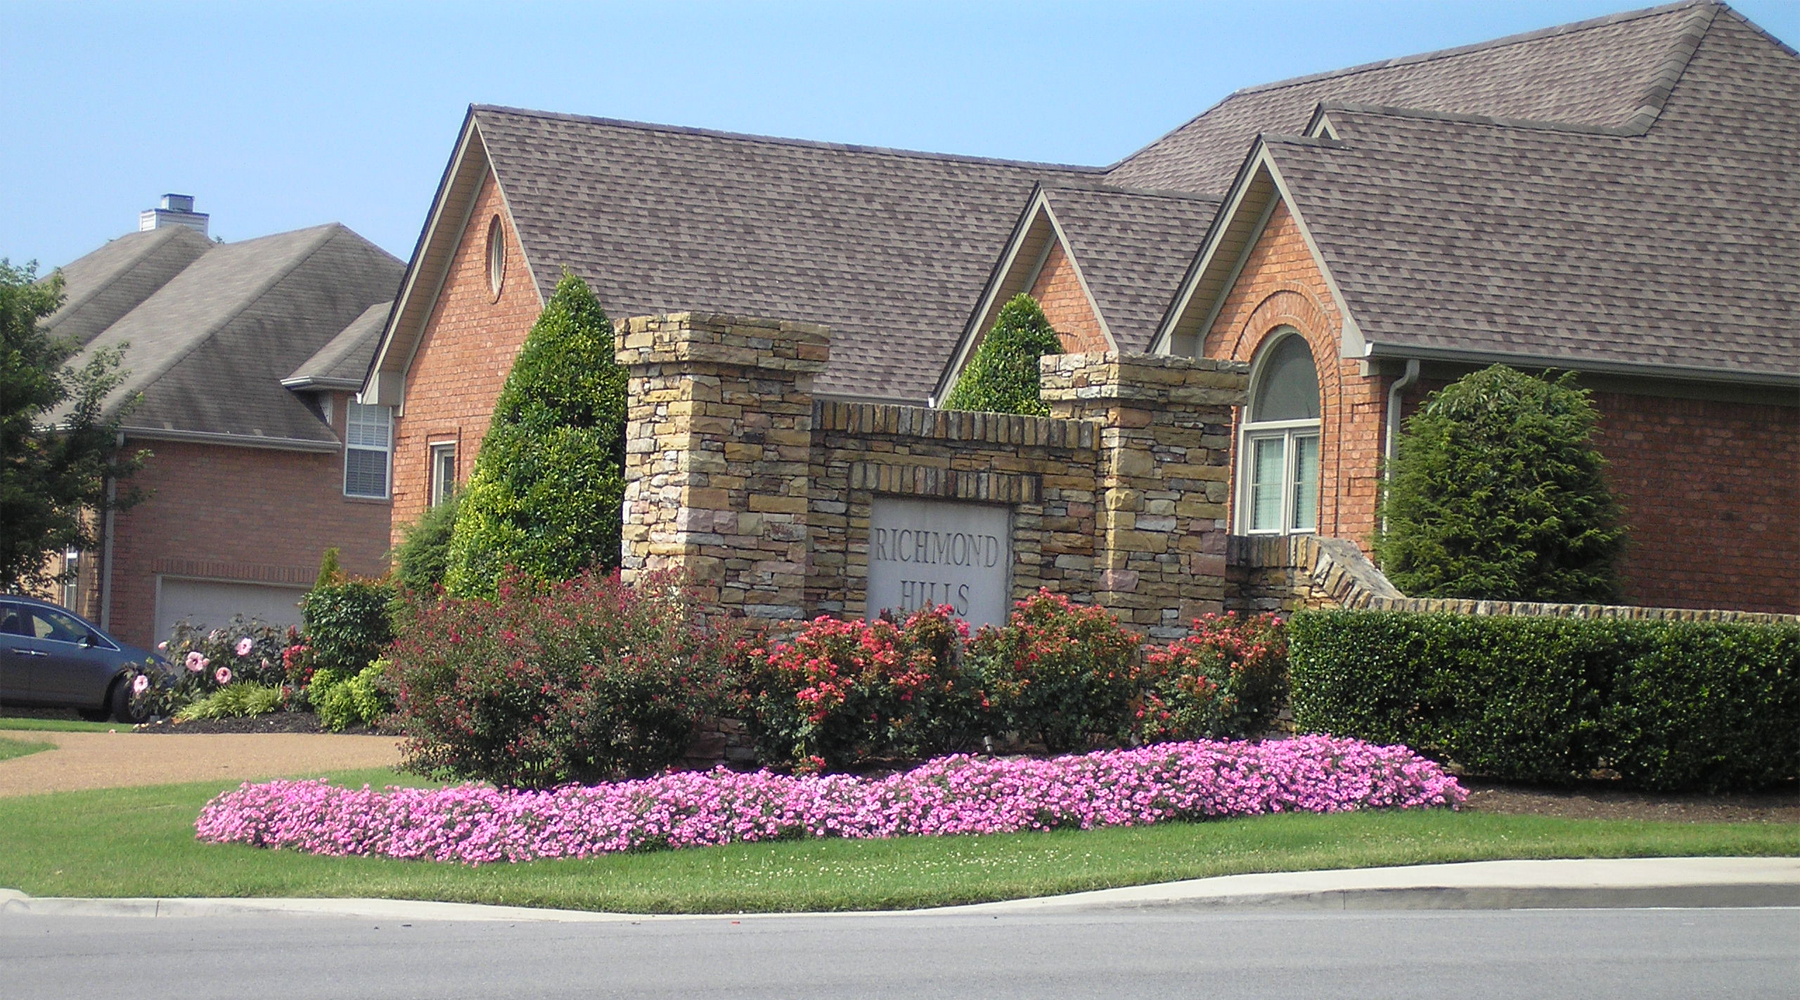 Picture of a stone neighborhood sign surrounded by pink flowers and red bushes.